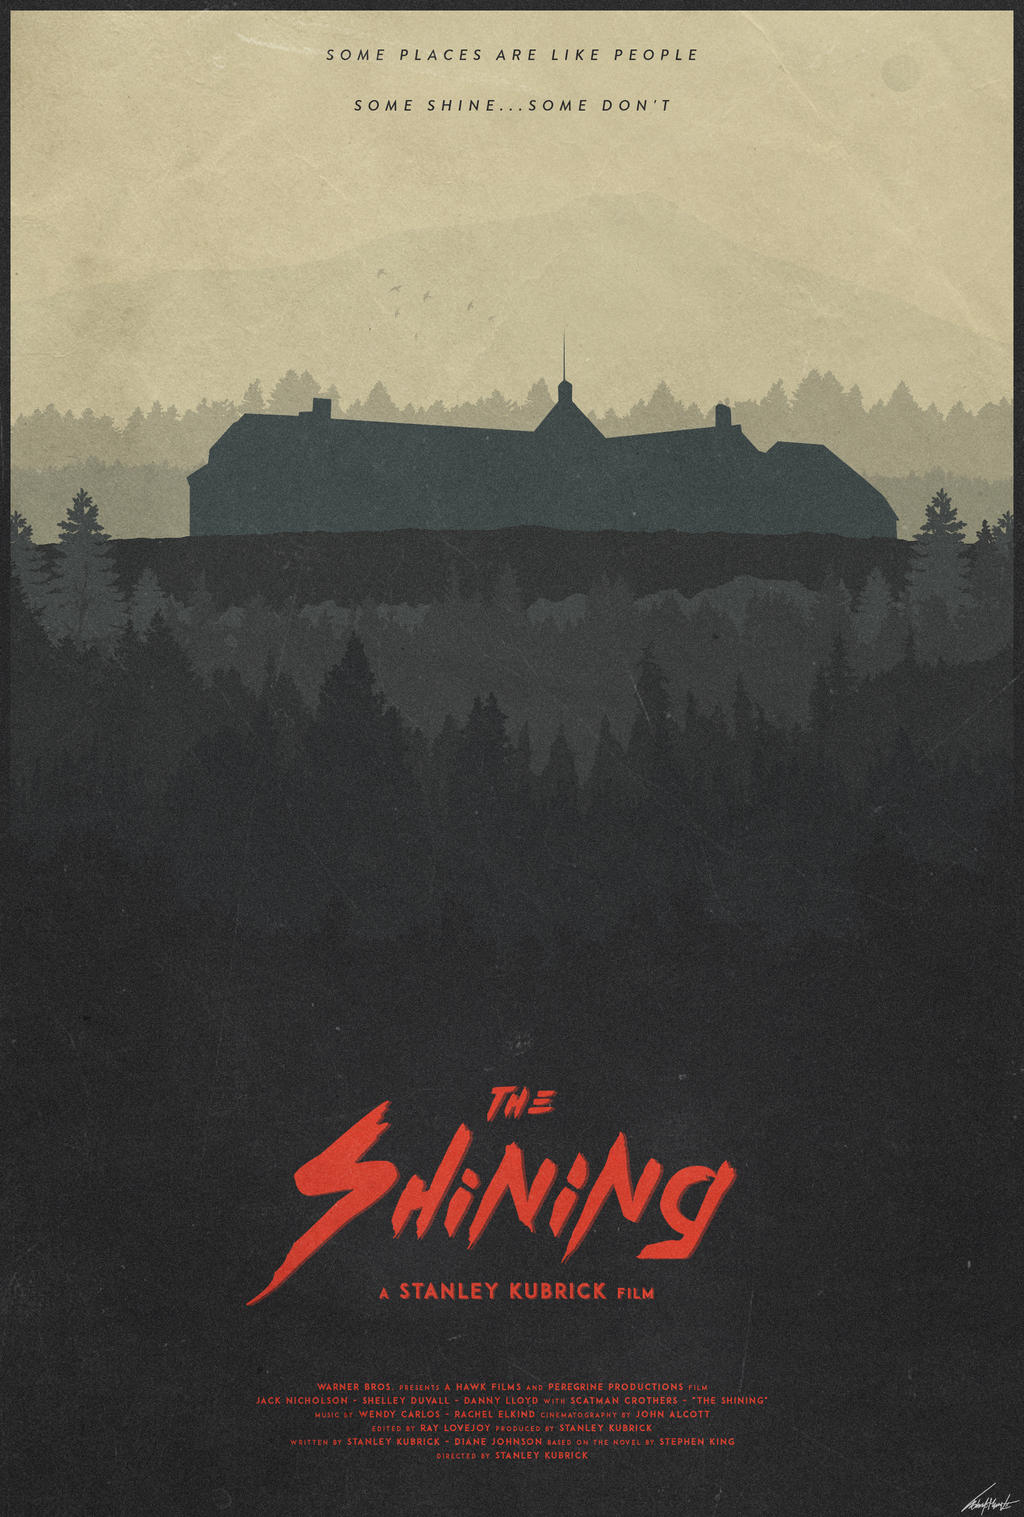 The Overlook - The Shining Poster by edwardjmoran on ...